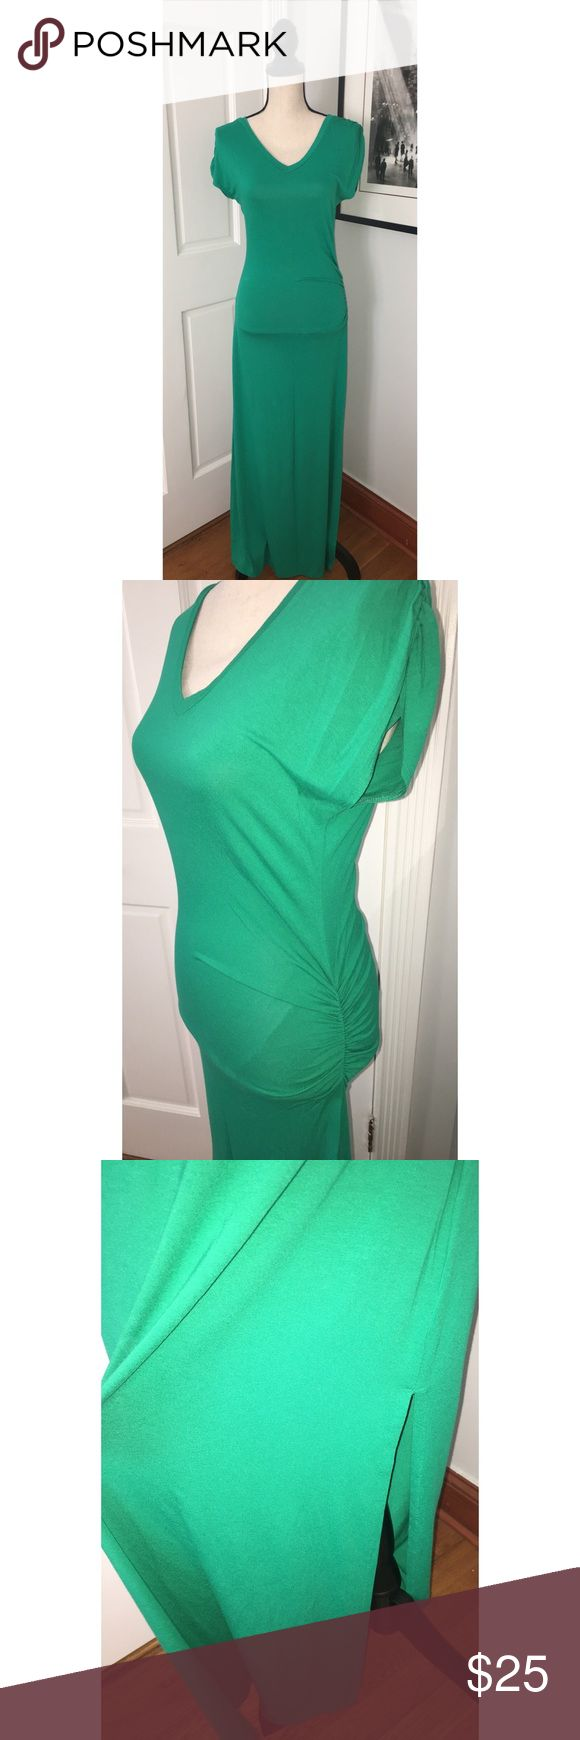 Women's Venus green maxi dress. Size small Green maxi dress with slit on leg. Great color for the spring and summer. With a pair of sandals or even ankle booties for an edgier look. 😎 listed under Zara for exposure Zara Dresses Maxi